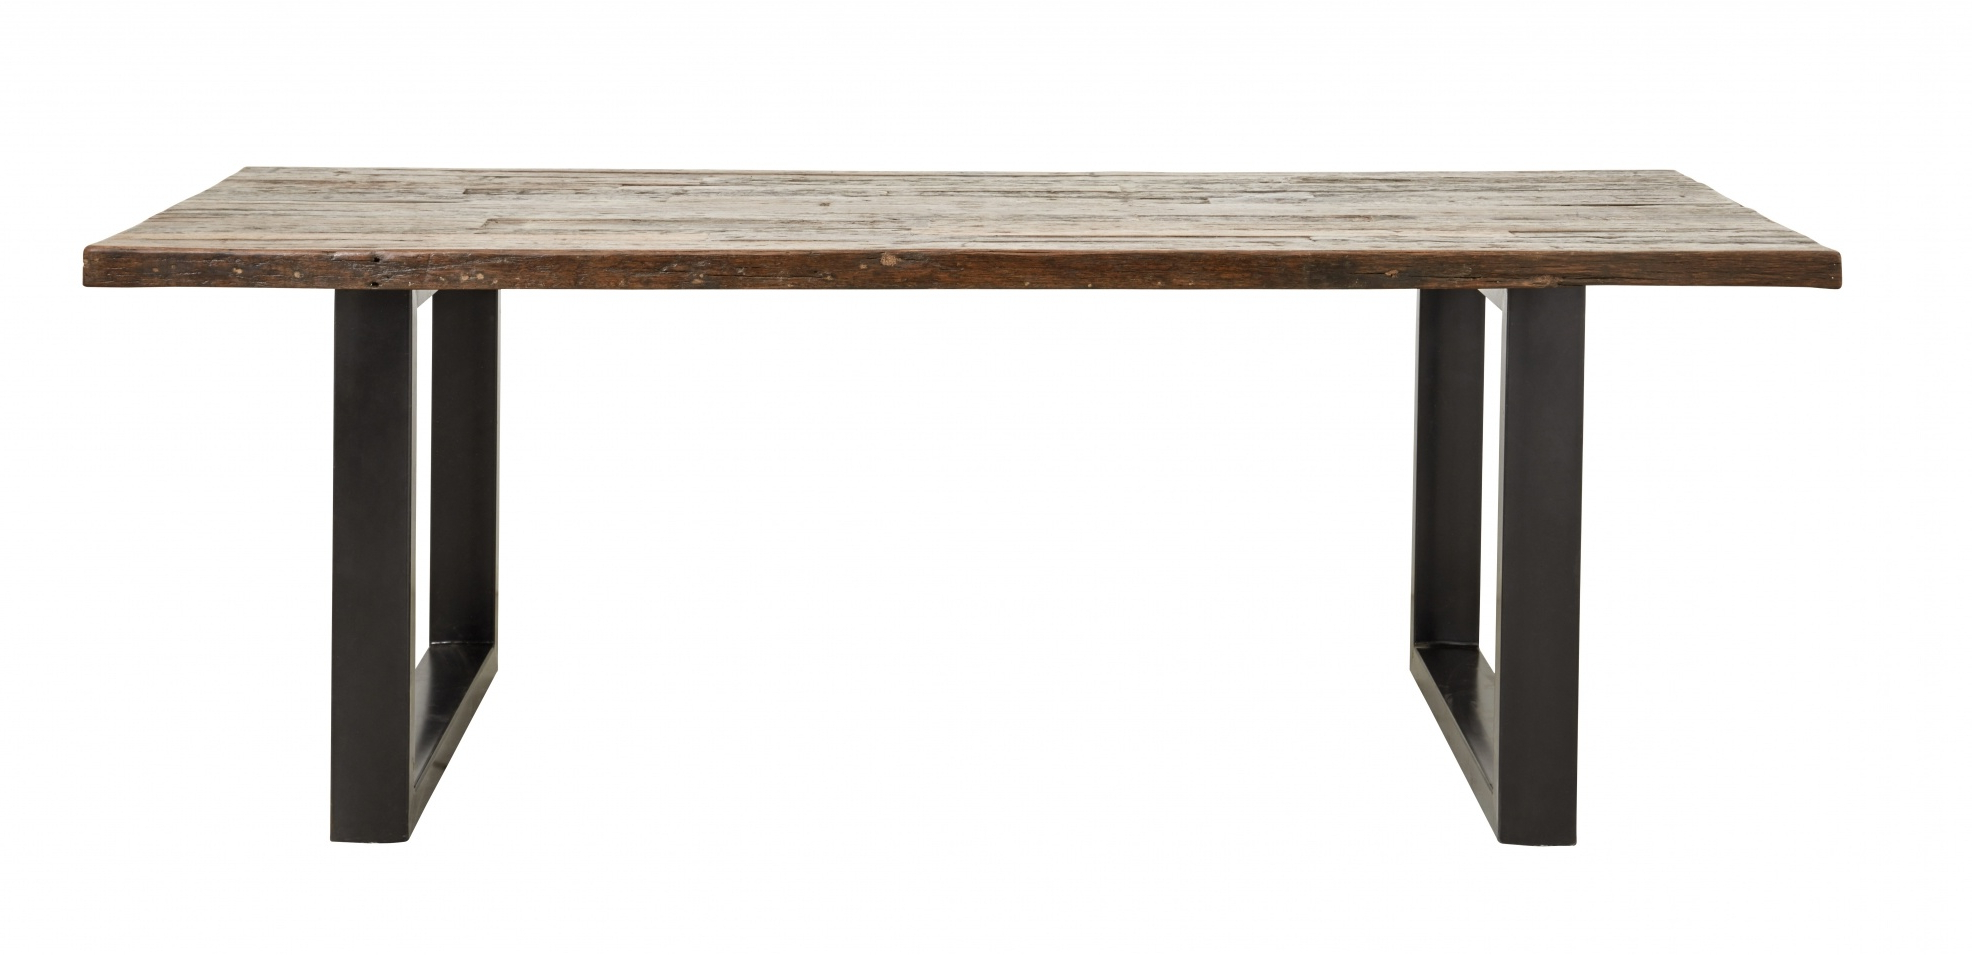 Latest Iron Wood Dining Tables Within Nordal Vintage Dining Table Iron / Wood (View 11 of 25)